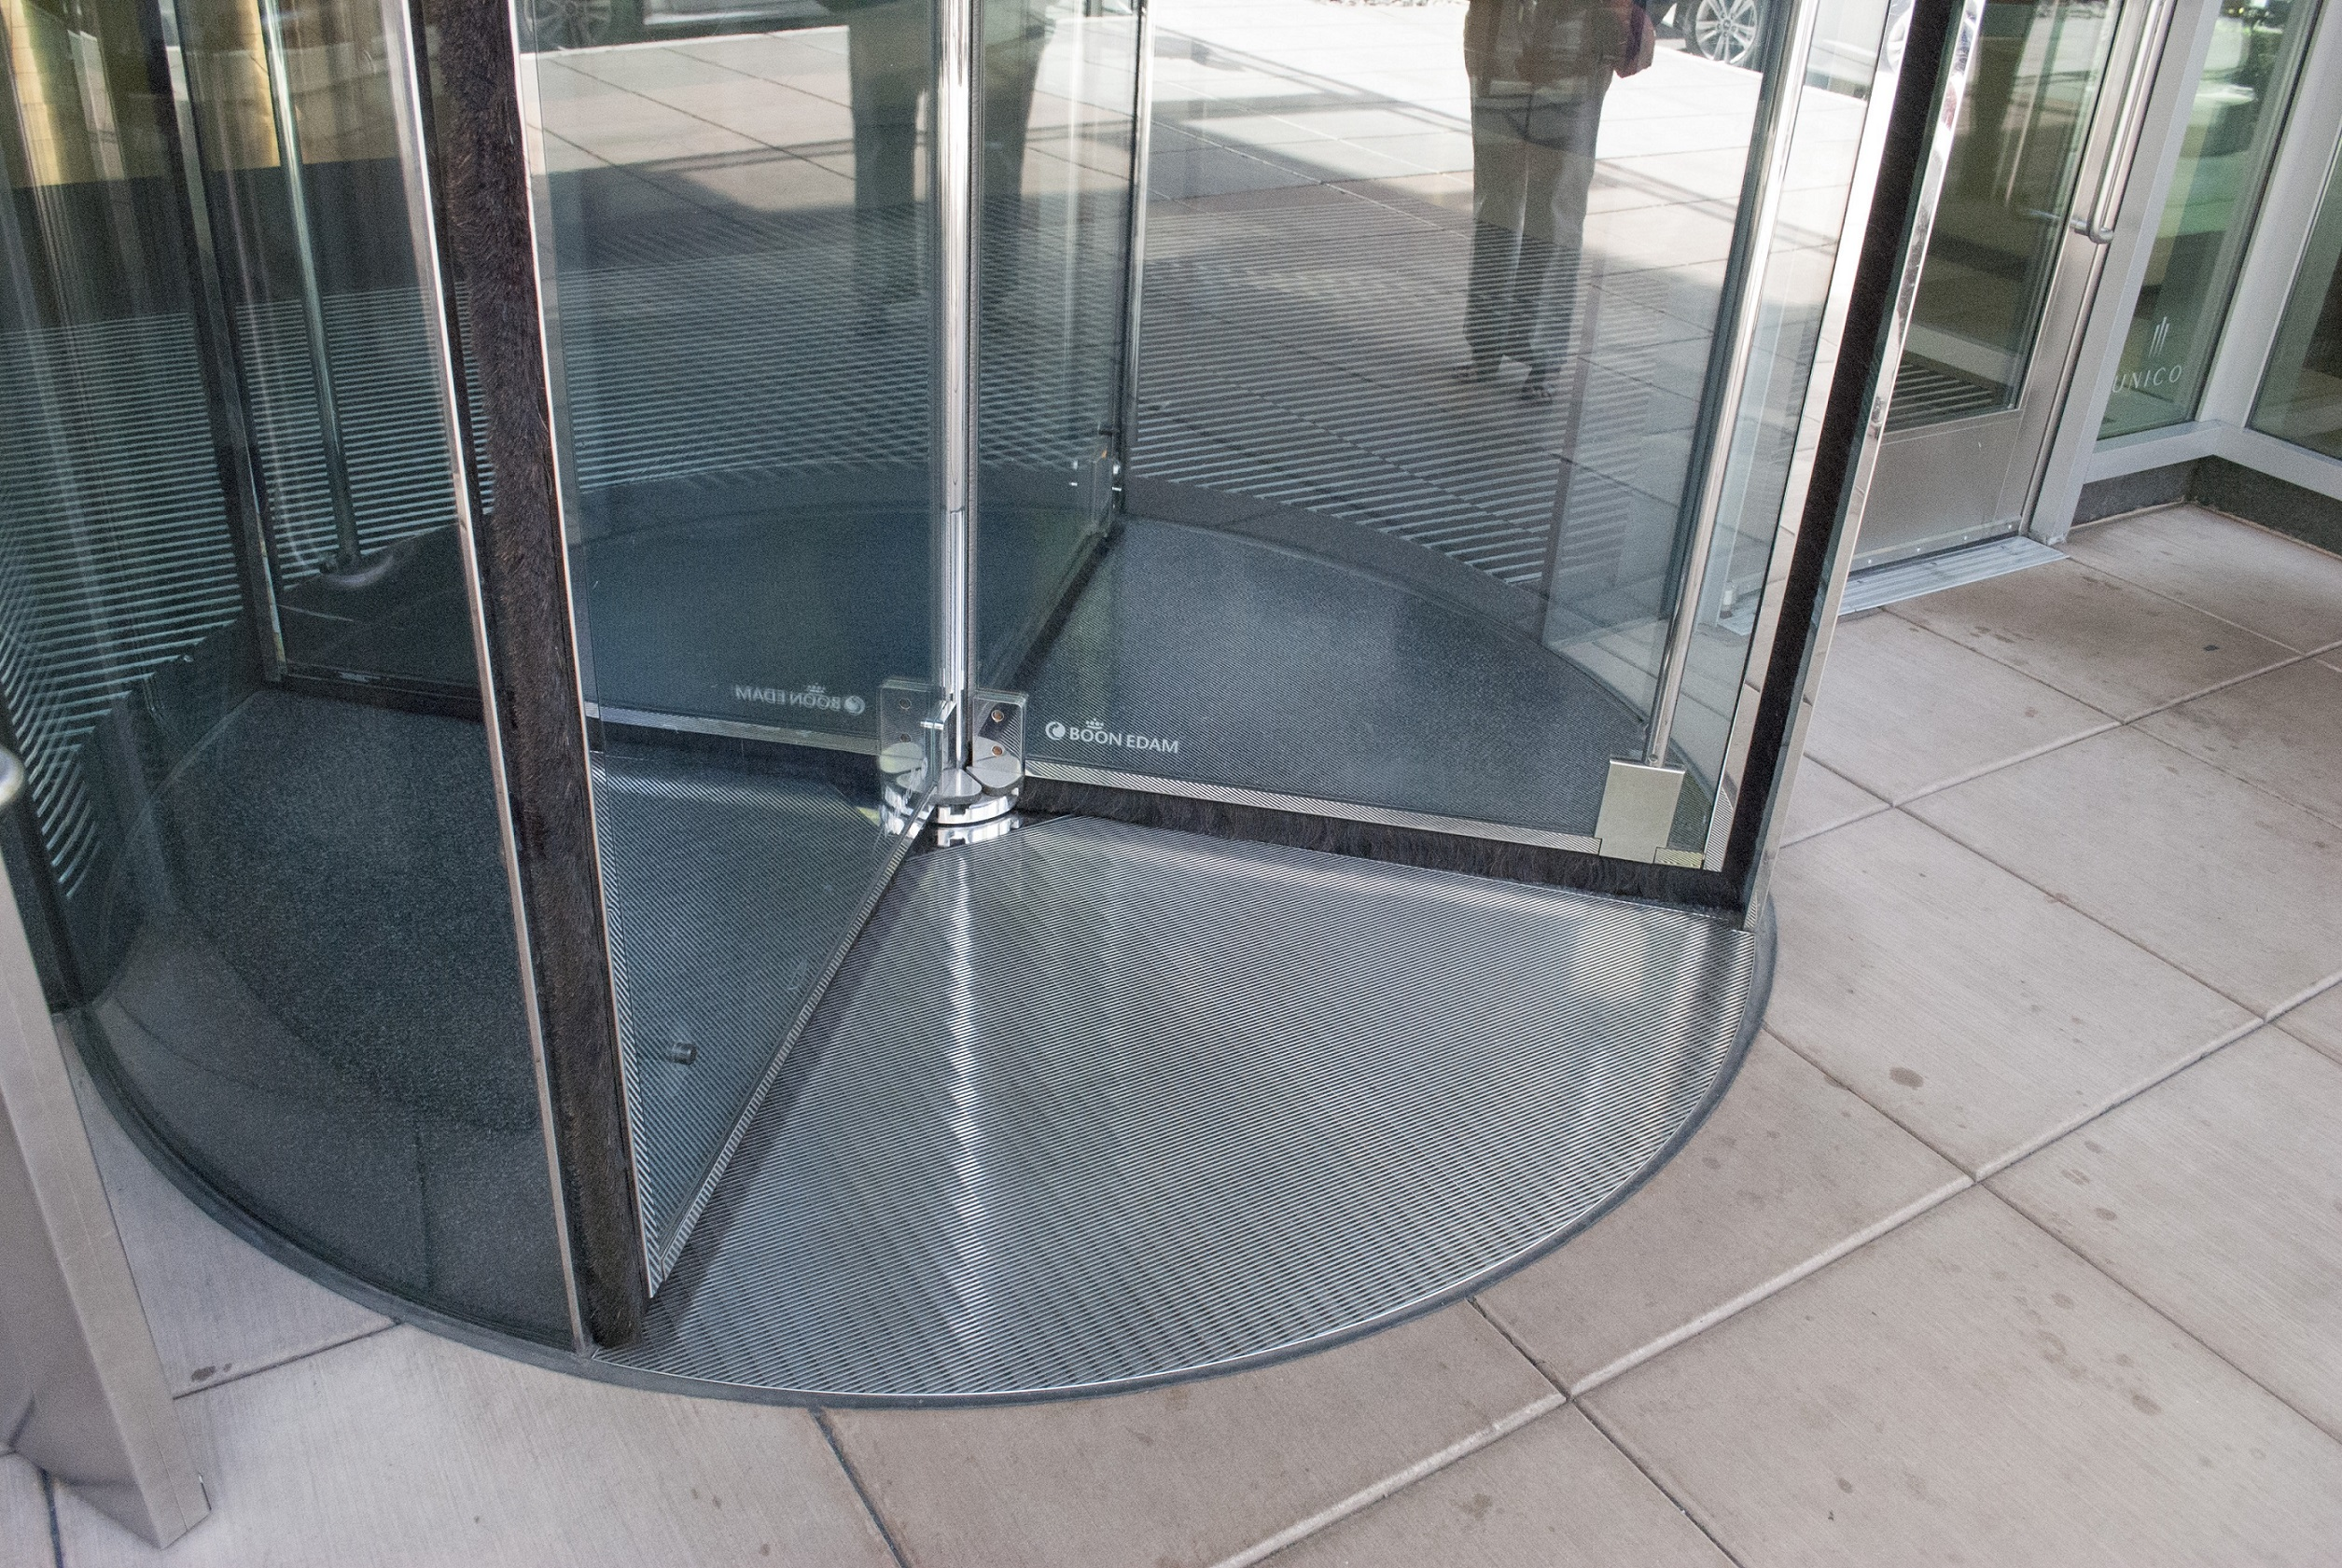 Use a matwell ring or floor frame to install an all-glass revolving door